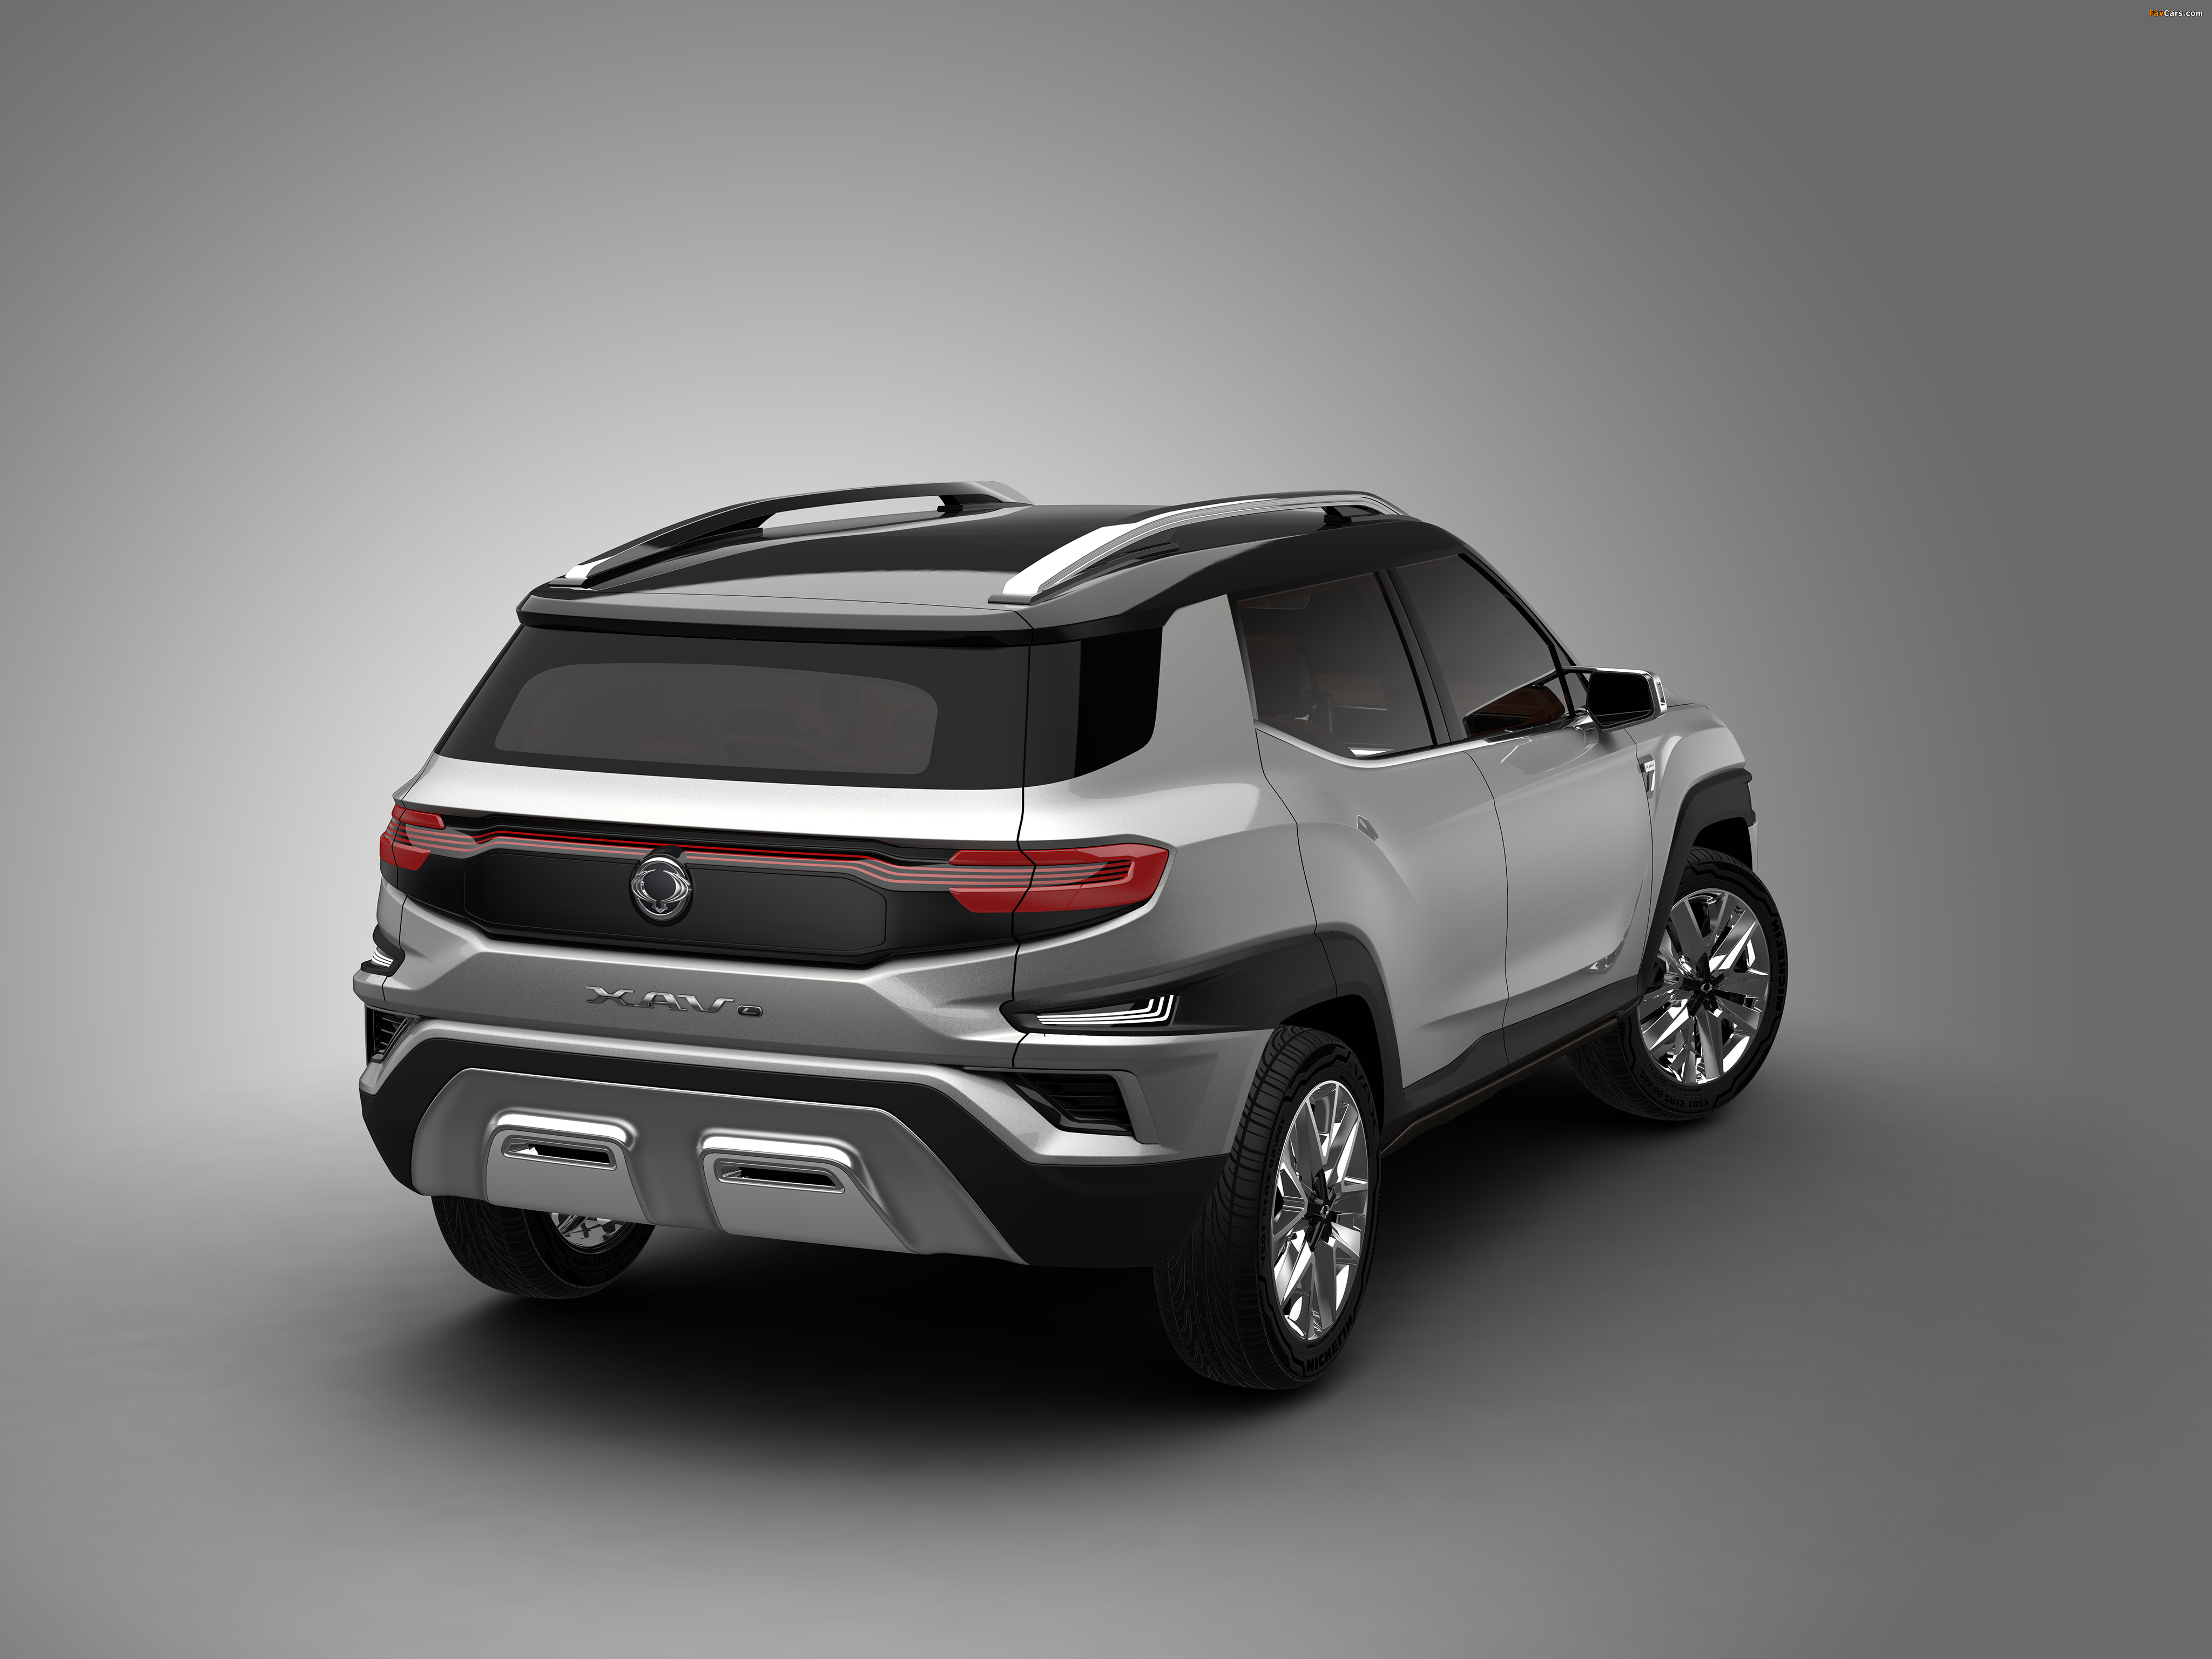 SsangYong XAVL Concept 2017 pictures (4096 x 3072)